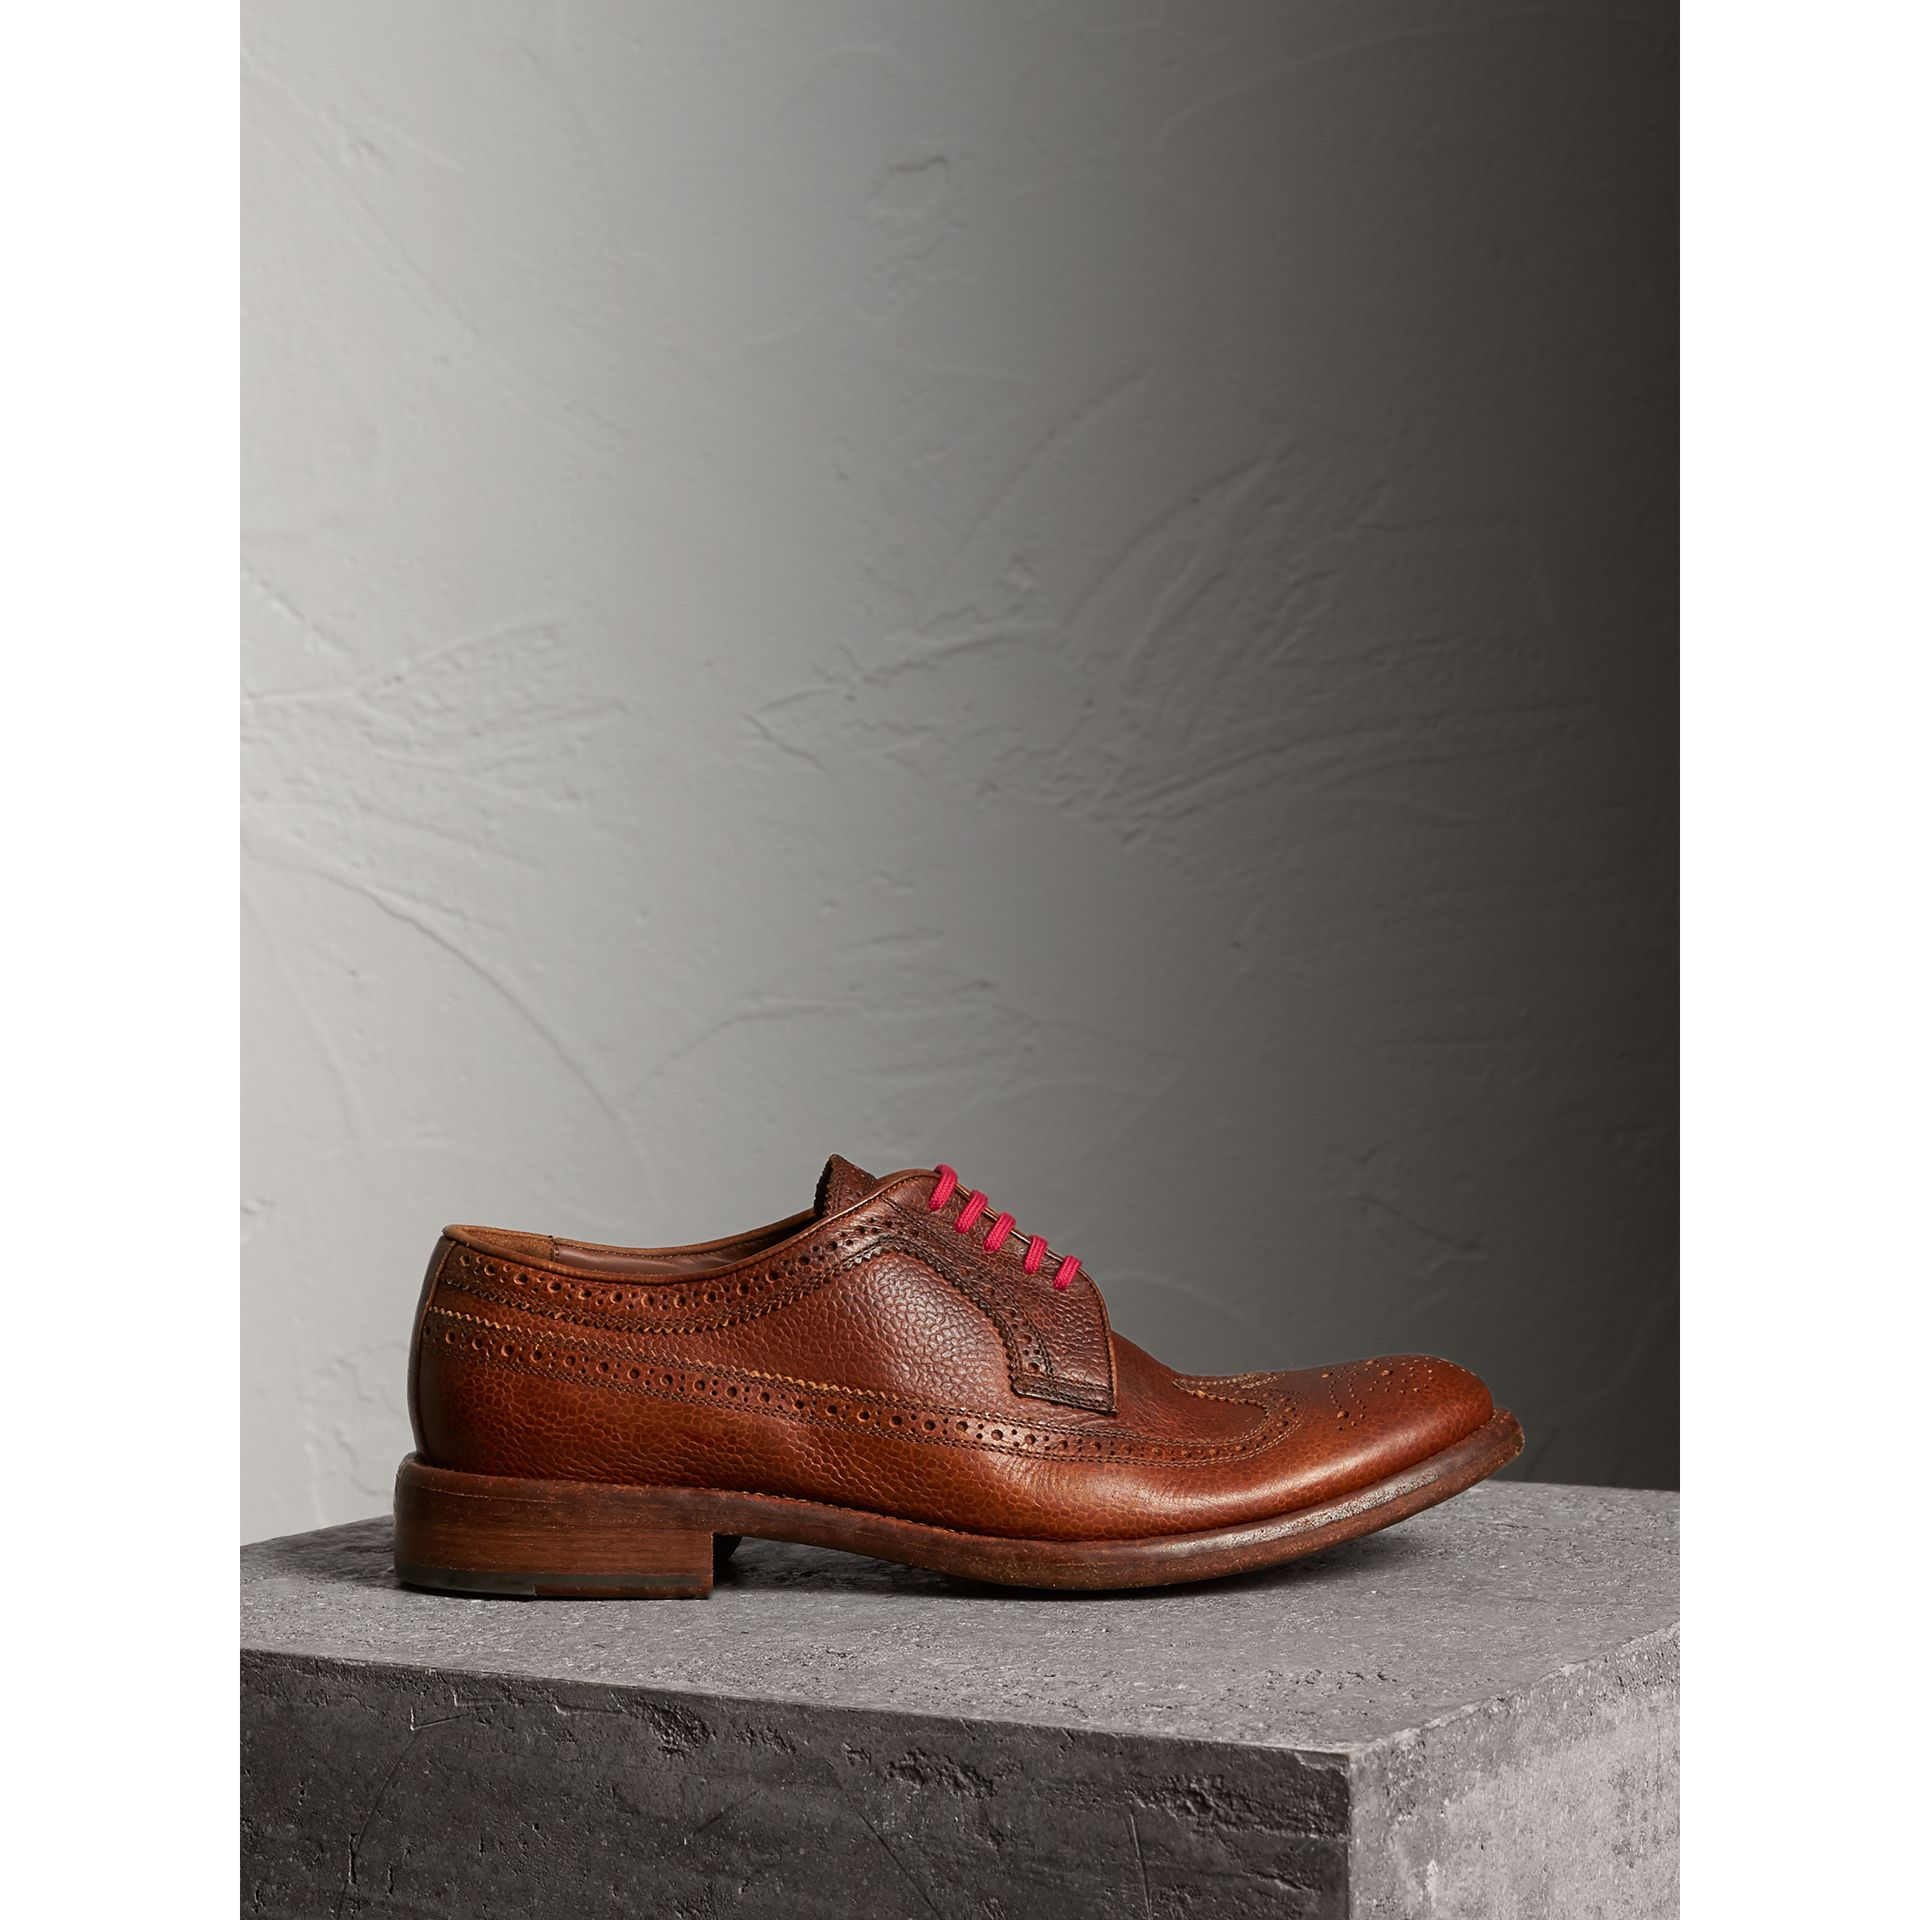 Burberry Vintage Chestnut Grainy Leather Brogues with Bright Laces